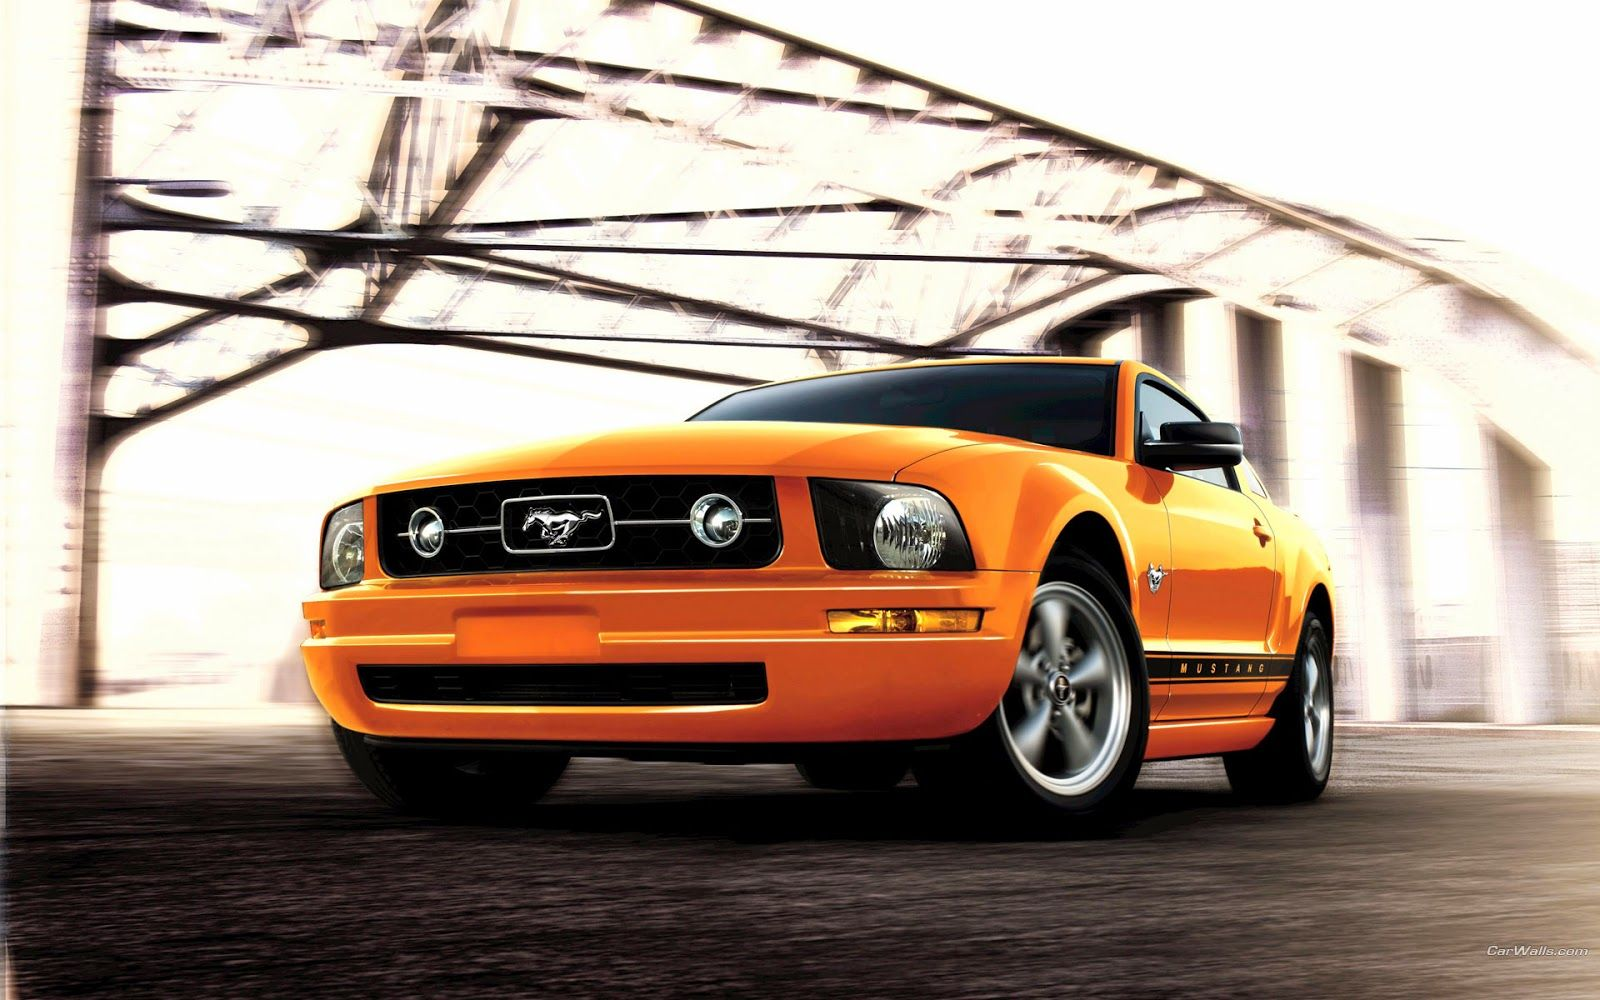 Ford Mustang Yellow Picture Hd Pictures Ford Mustang Mustang Hd Car Wallpapers